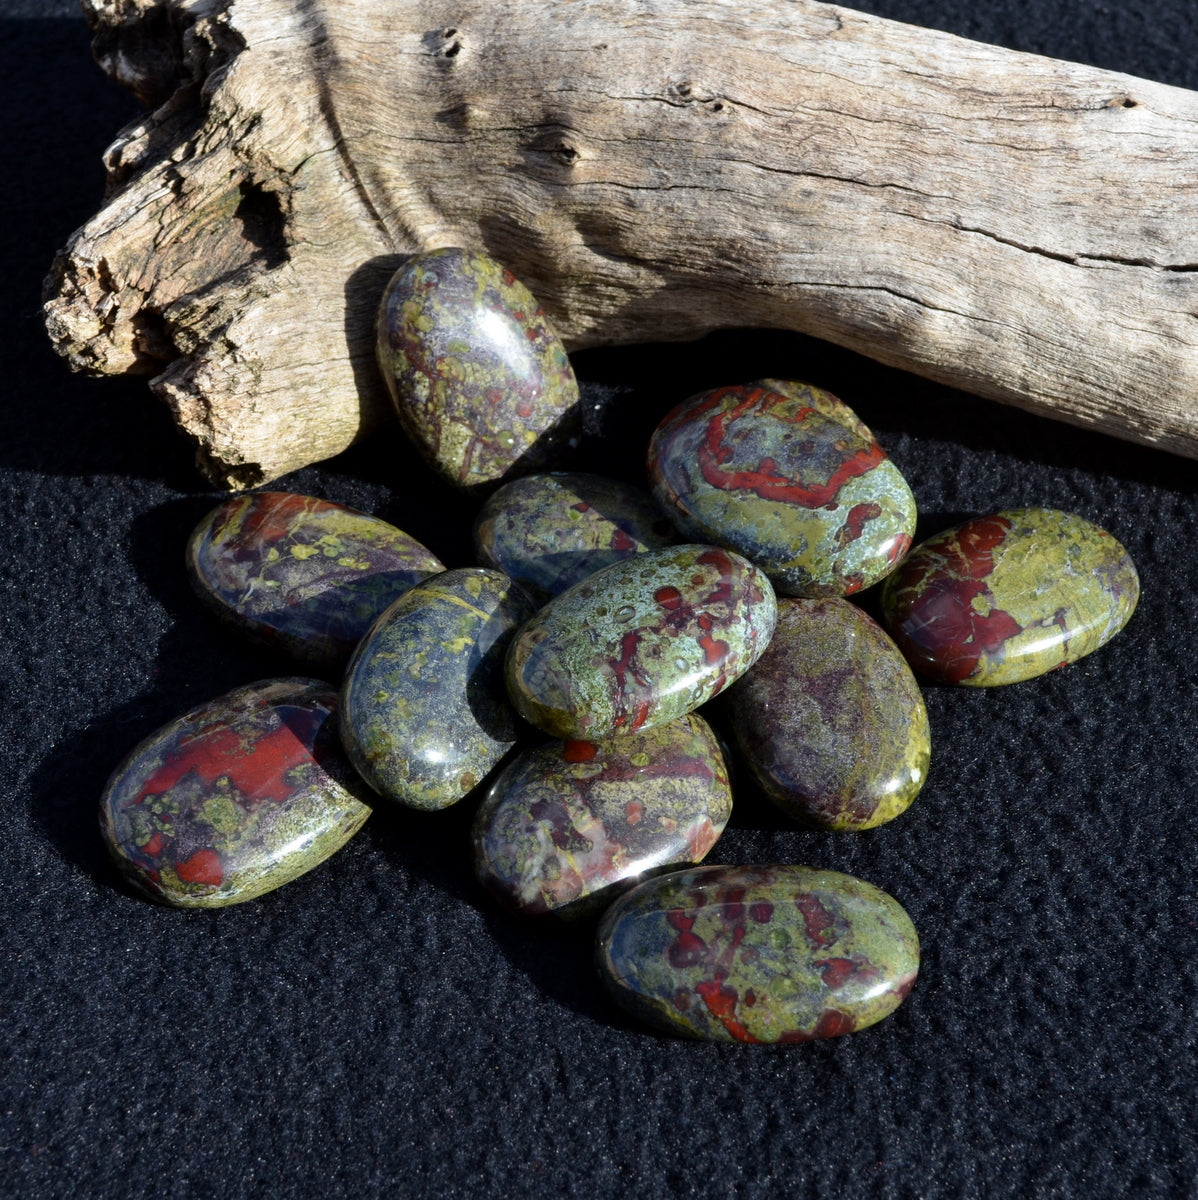 Dragonsblood Jasper Palmstone - Nurturing Strength Wisdom Positive - Shop Now at Illiom Crystals - Afterpay Now Available